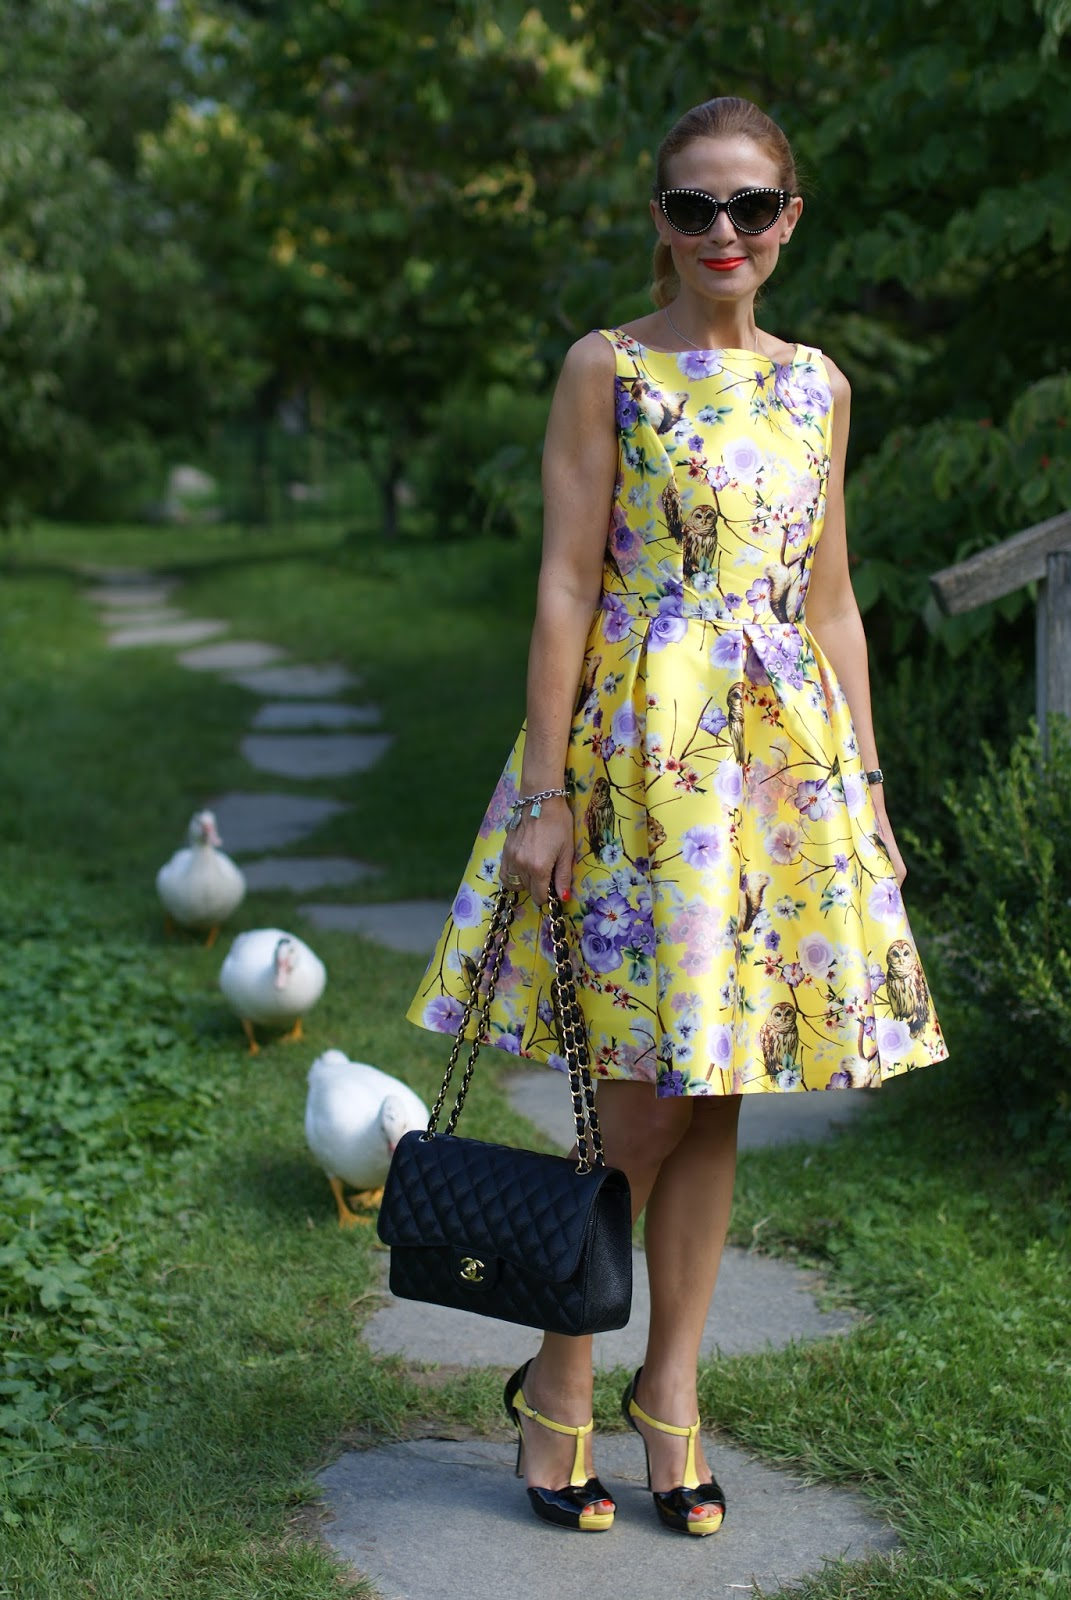 Girly yellow dress and Chanel 2.55 bag on Fashion and Cookies fashion blog